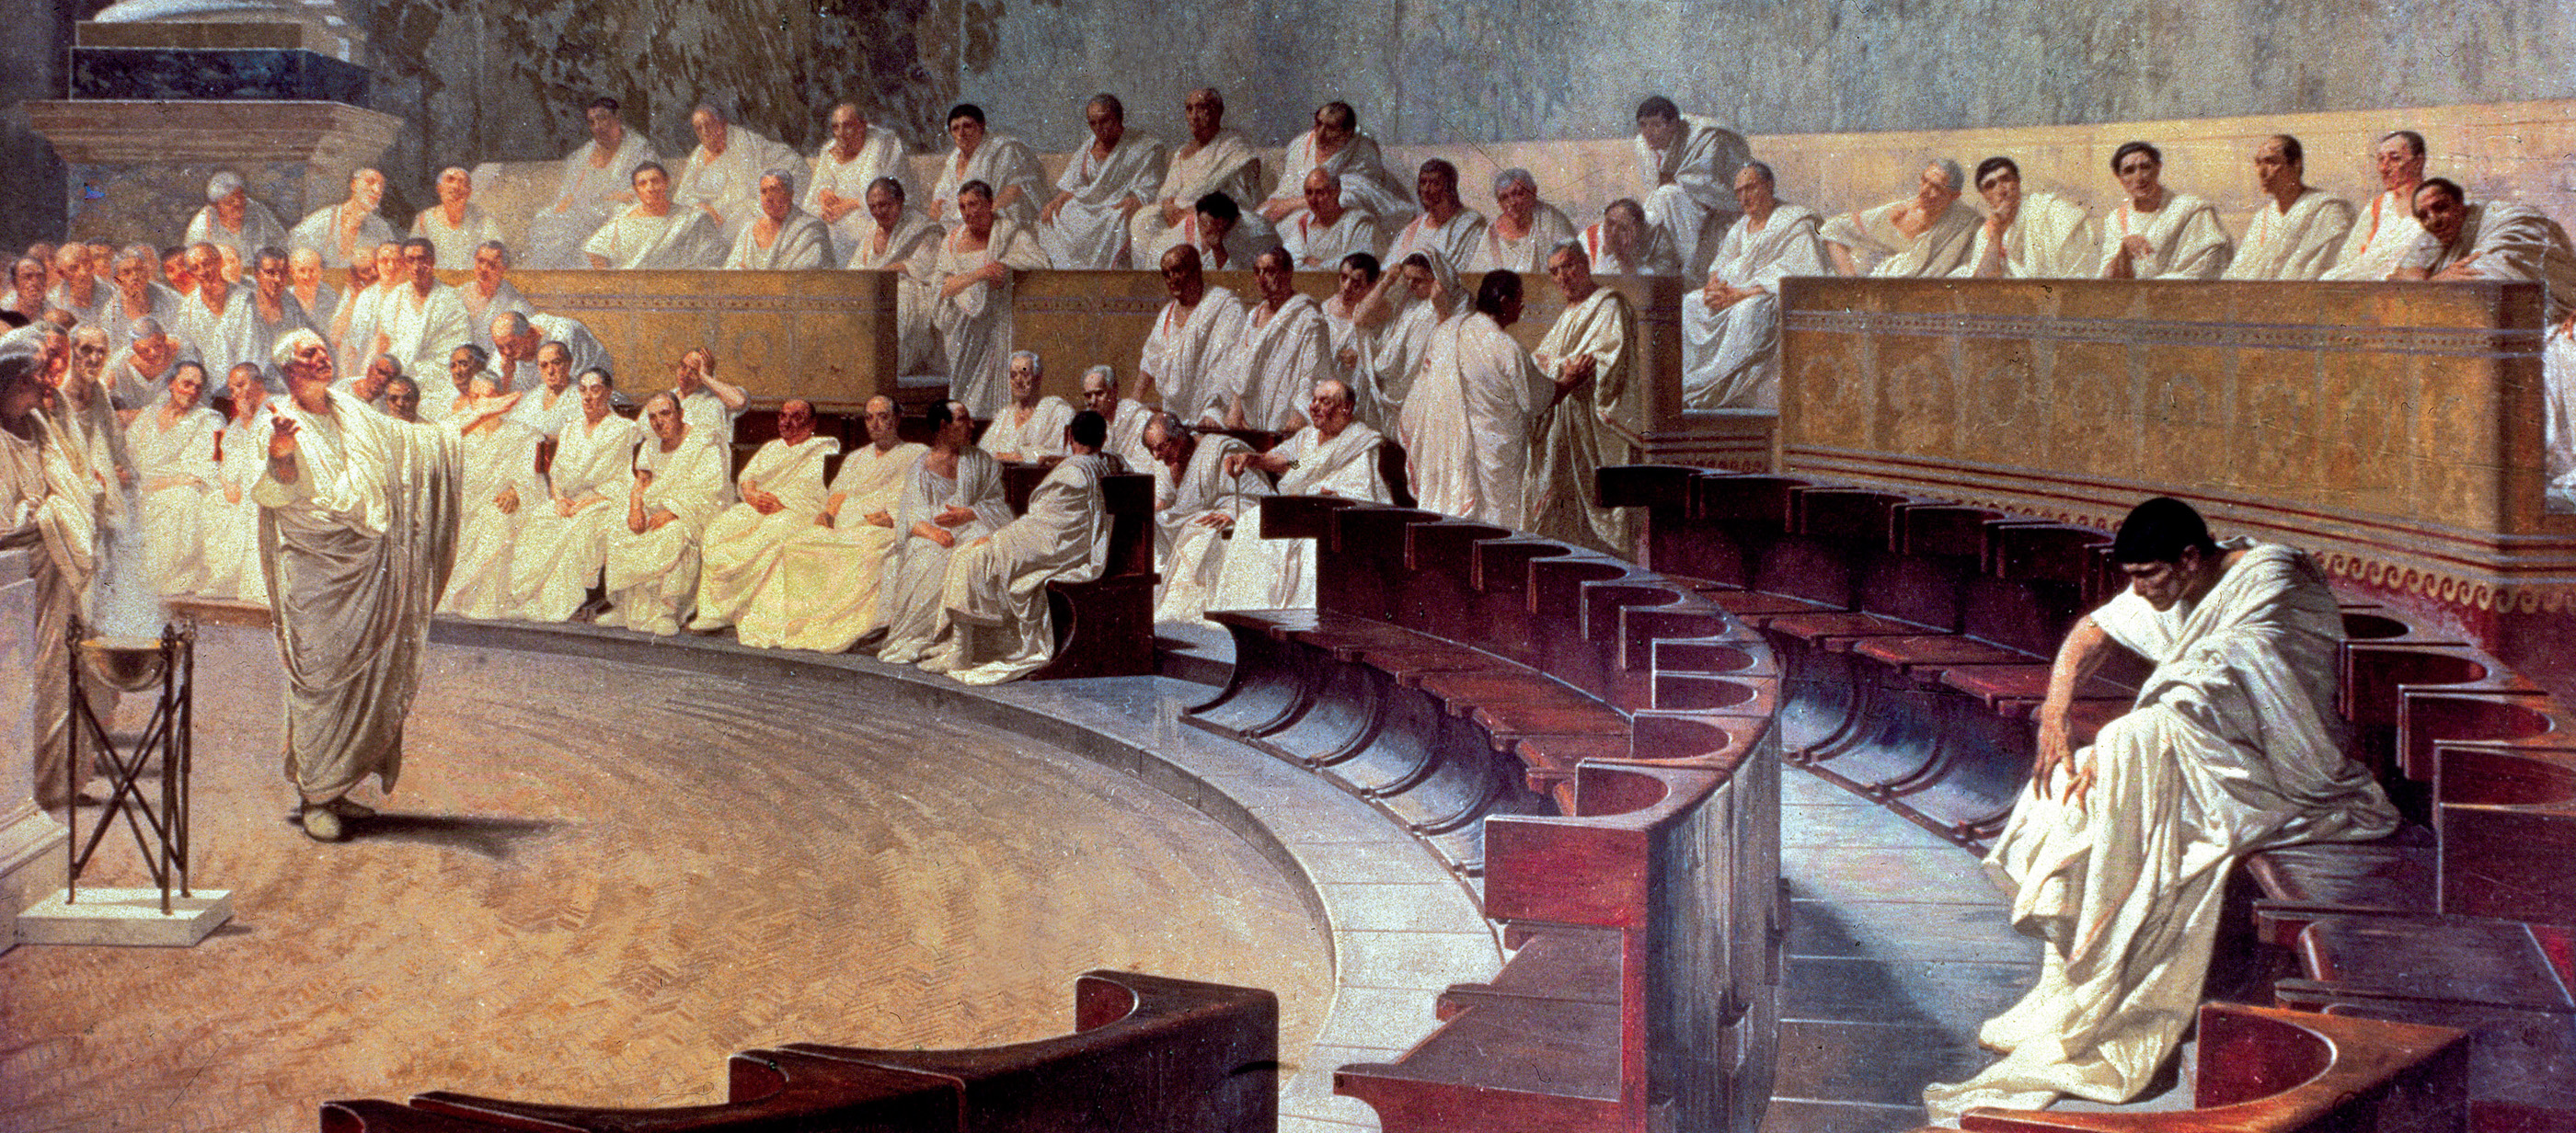 Painting of a denunciation in the ancient Roman senate.